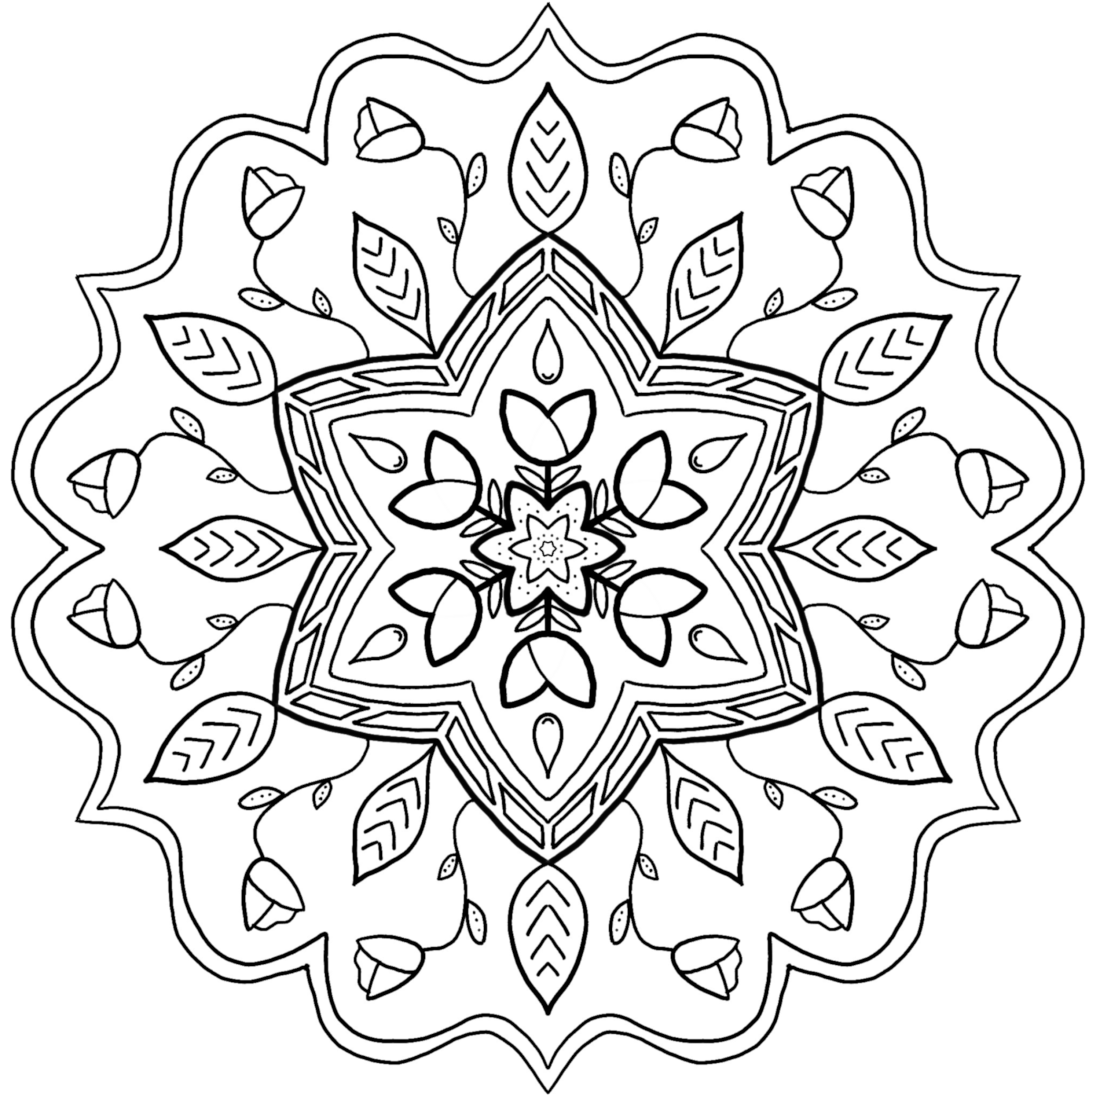 Picture of Ivy League coloring page